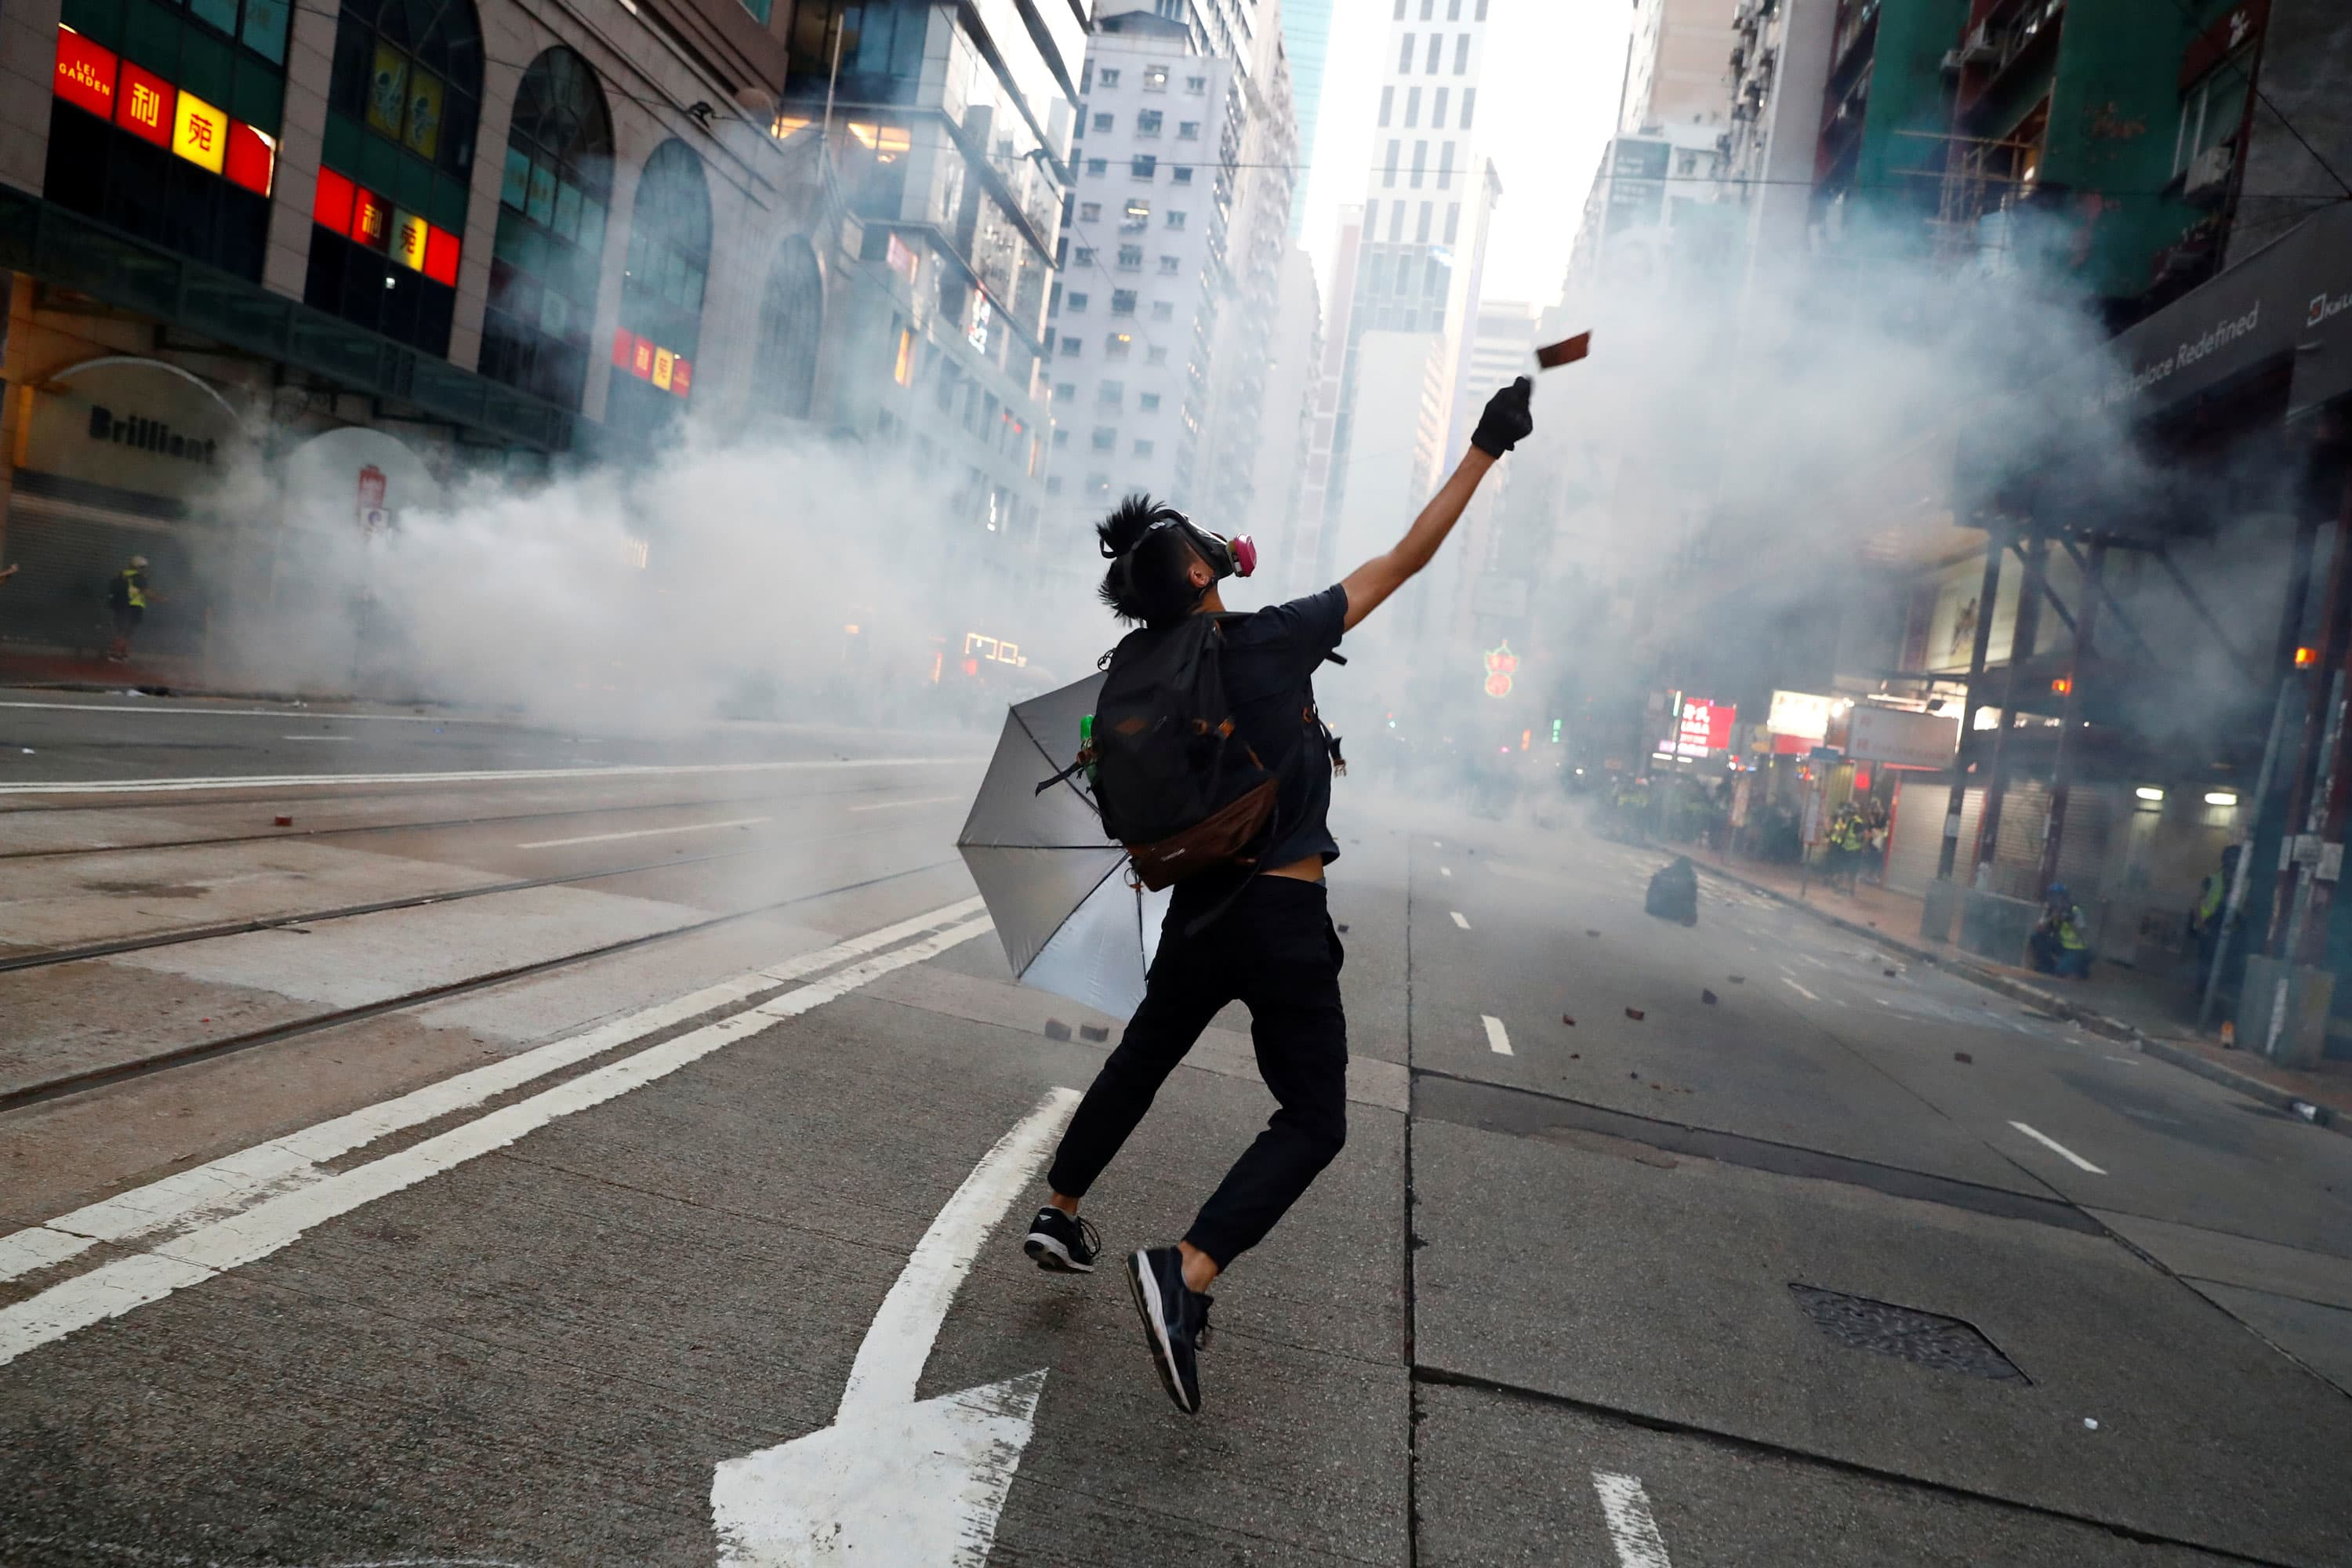 How the US became a tear gas production powerhouse amid rising global unrest